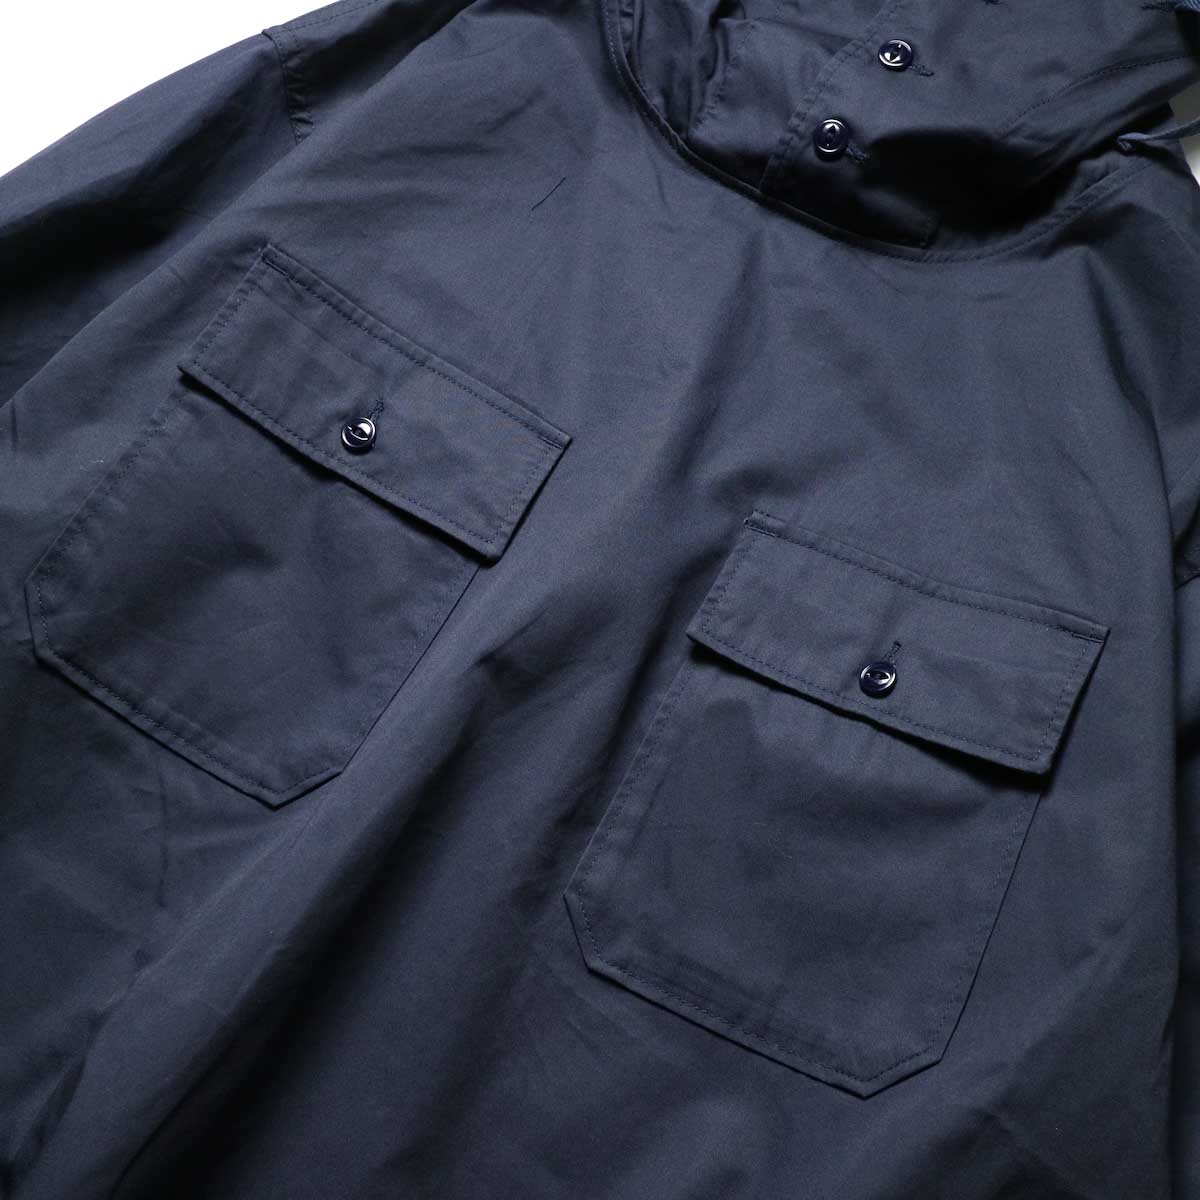 Engineered Garments / Cagoule Shirt -High Count Twill (Dk.Navy)ポケット